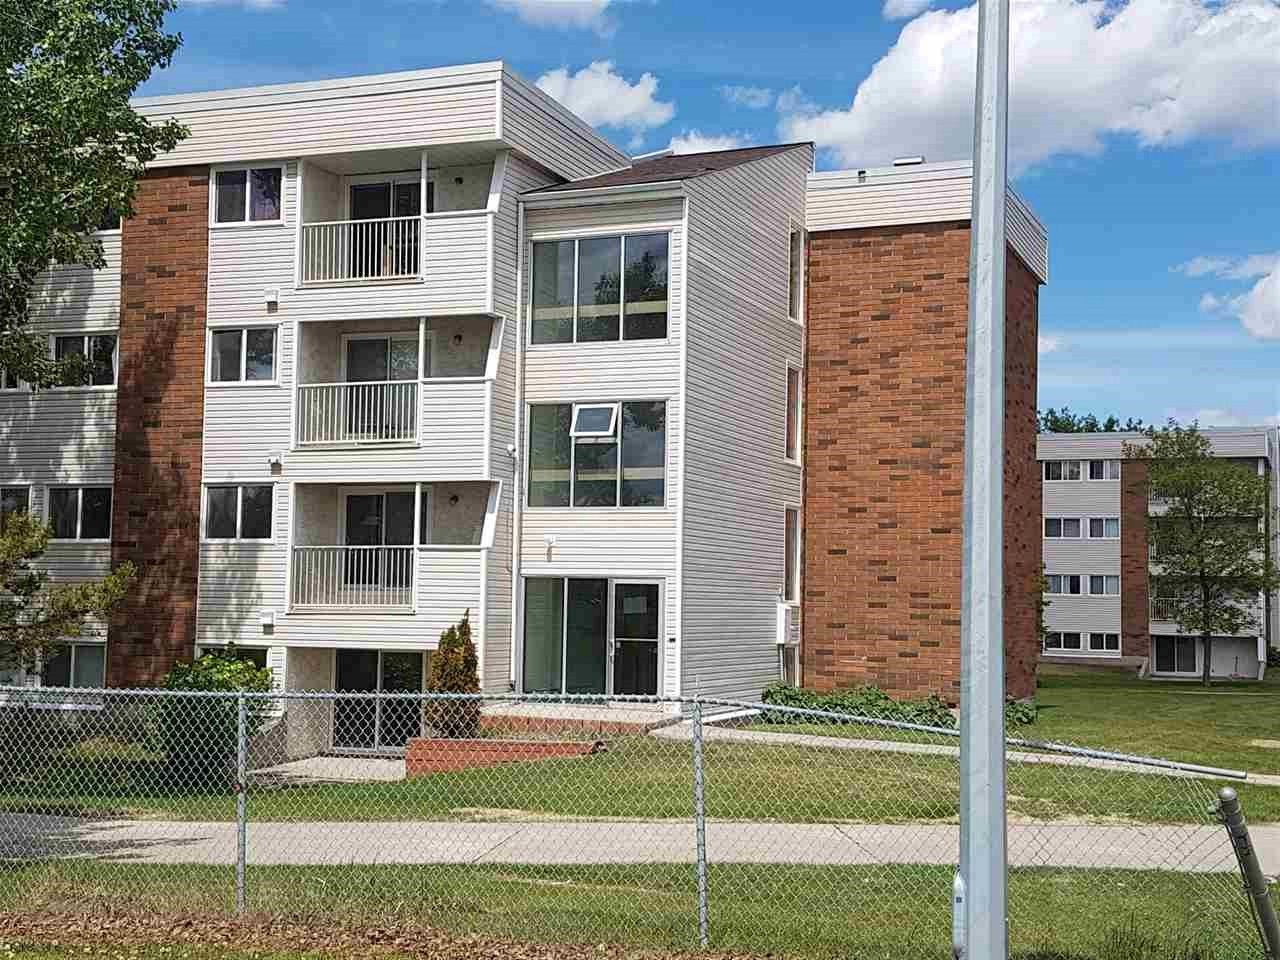 33 11265 31 Ave NW, 2 bed, 1 bath, at $99,900